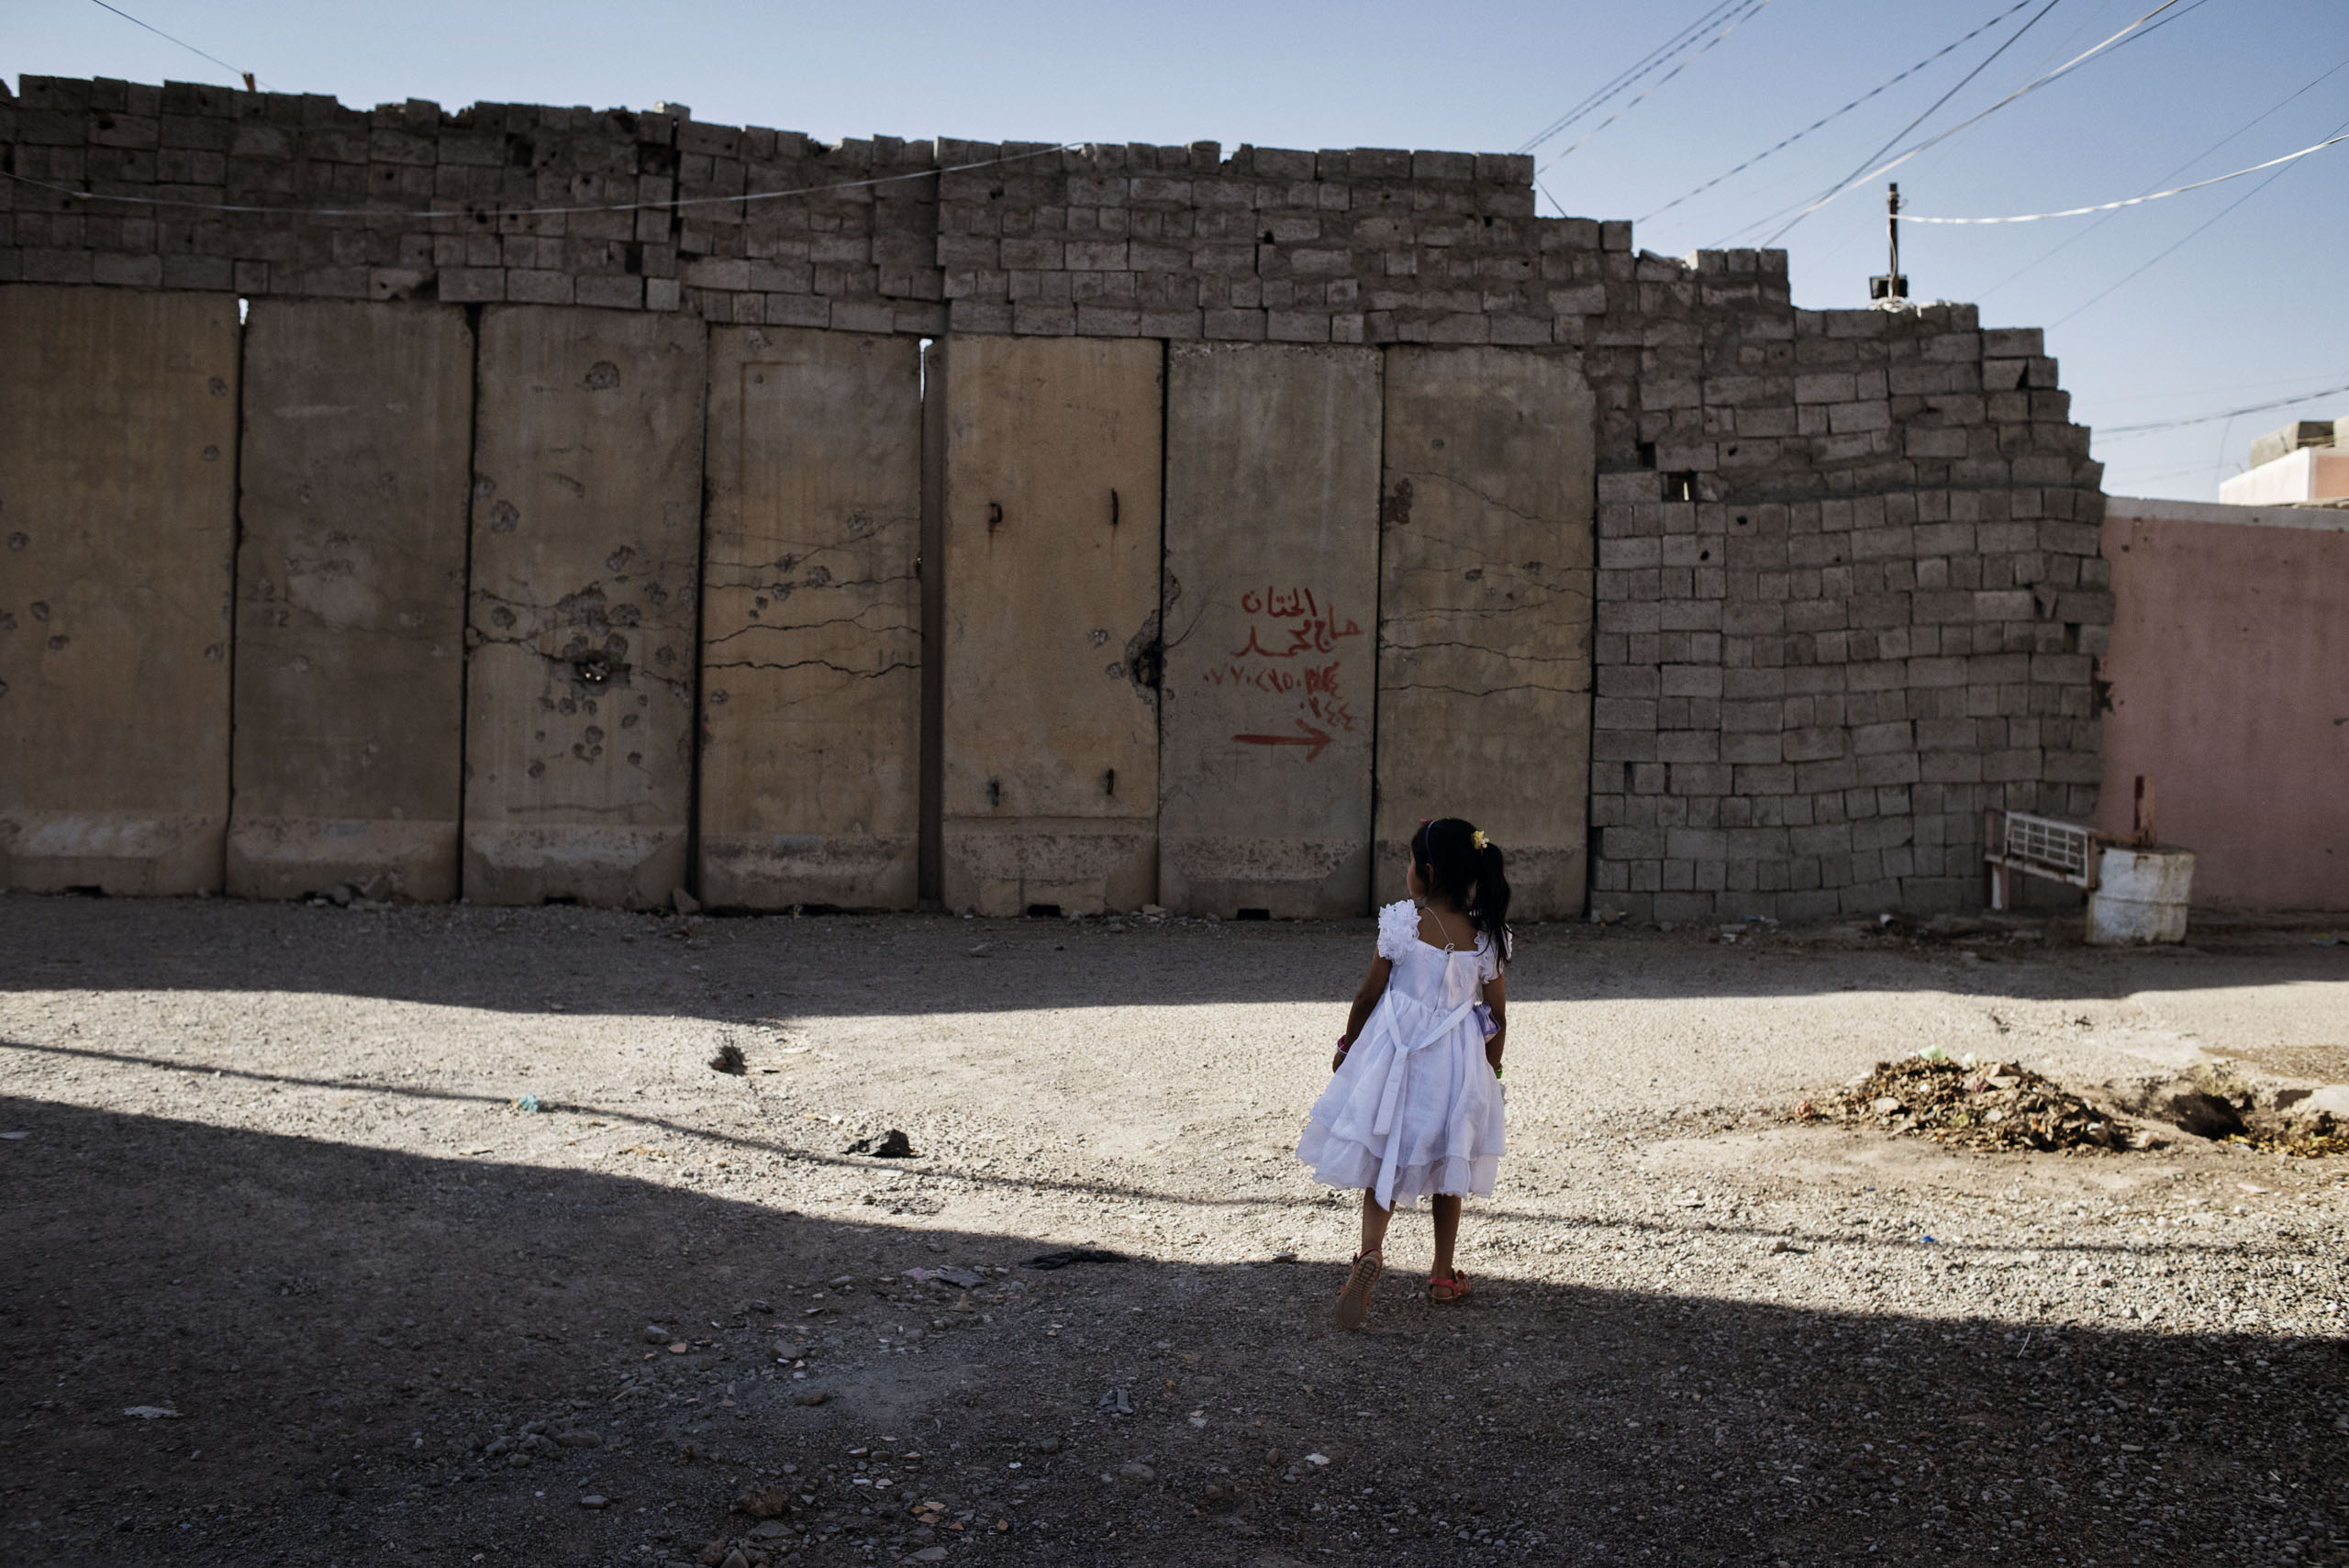 A young girl walks by a wall in the town of Tuz Khurmatu, northern Iraq, May 20, 2016. Walls have been installed in the city as a result of recent fighting between rival Kurdish and Shiite Turkmen factions. The deadly clashes signaled tension among among two groups nominally united in the broader fight against ISIS.From  Yuri Kozyrev: On the Front Lines of the War Against ISIS